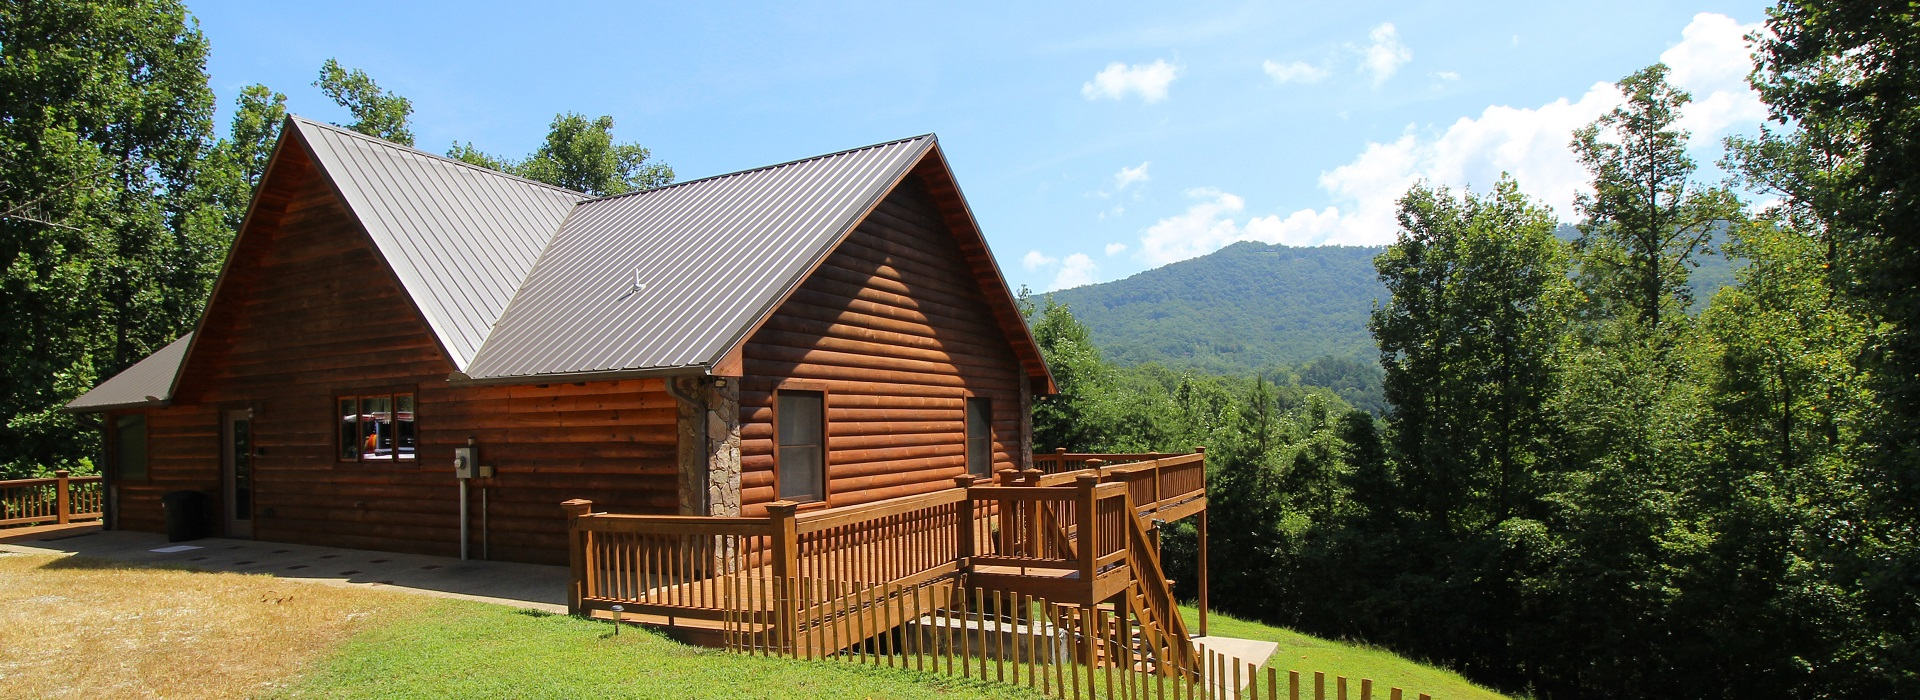 pool mountain cabin cabins cheap with indoor chattanooga interior rentals lookout